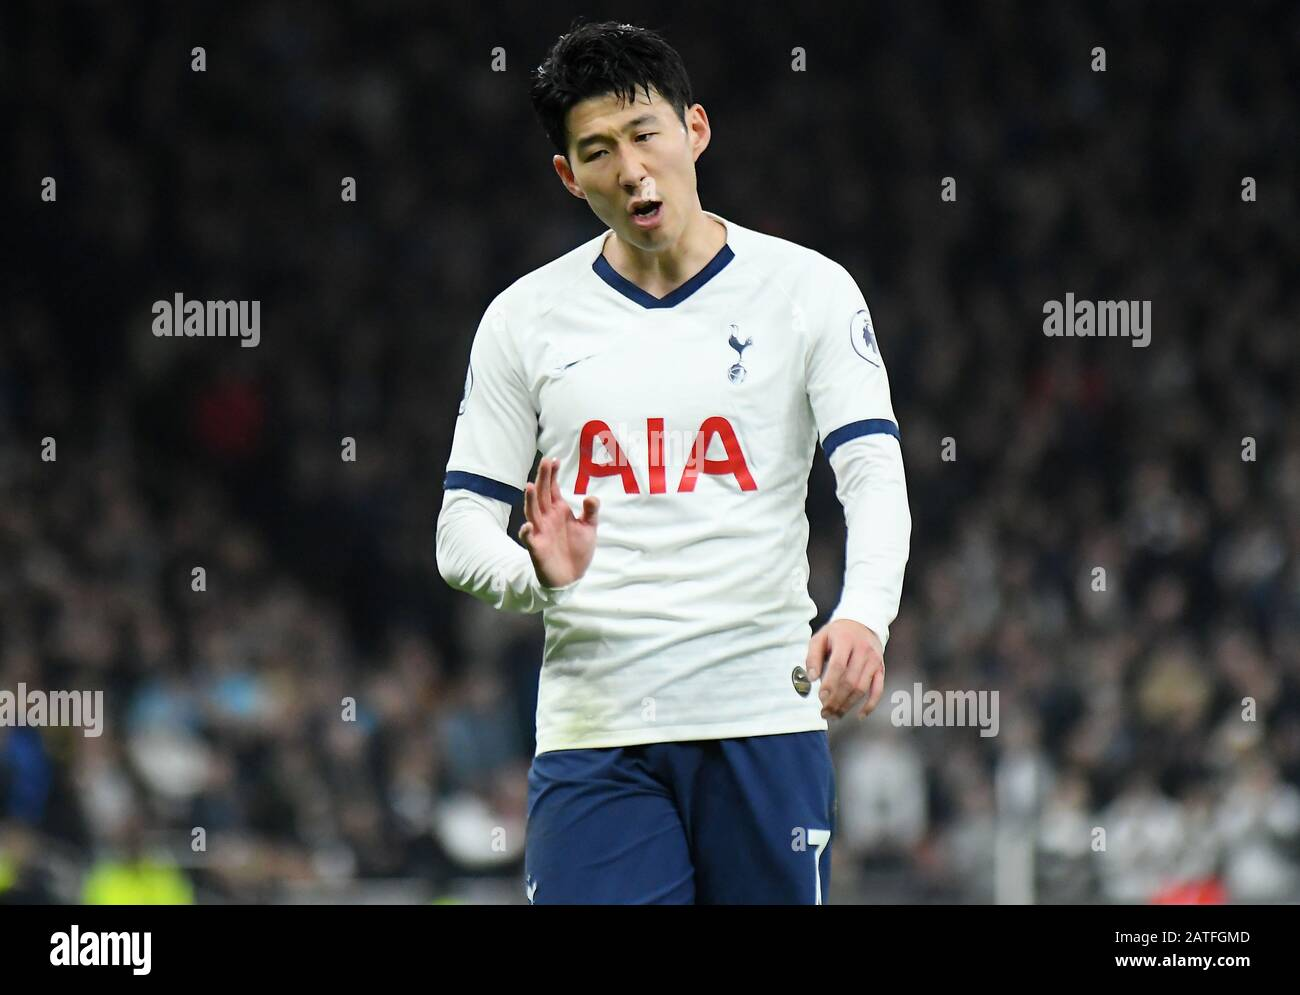 London England February 2 2020 Heung Min Son Of Tottenham Pictured During The 2019 20 Premier League Game Between Tottenham Hotspur Fc And Manchester City Fc At Tottenham Hotspur Stadium Stock Photo Alamy